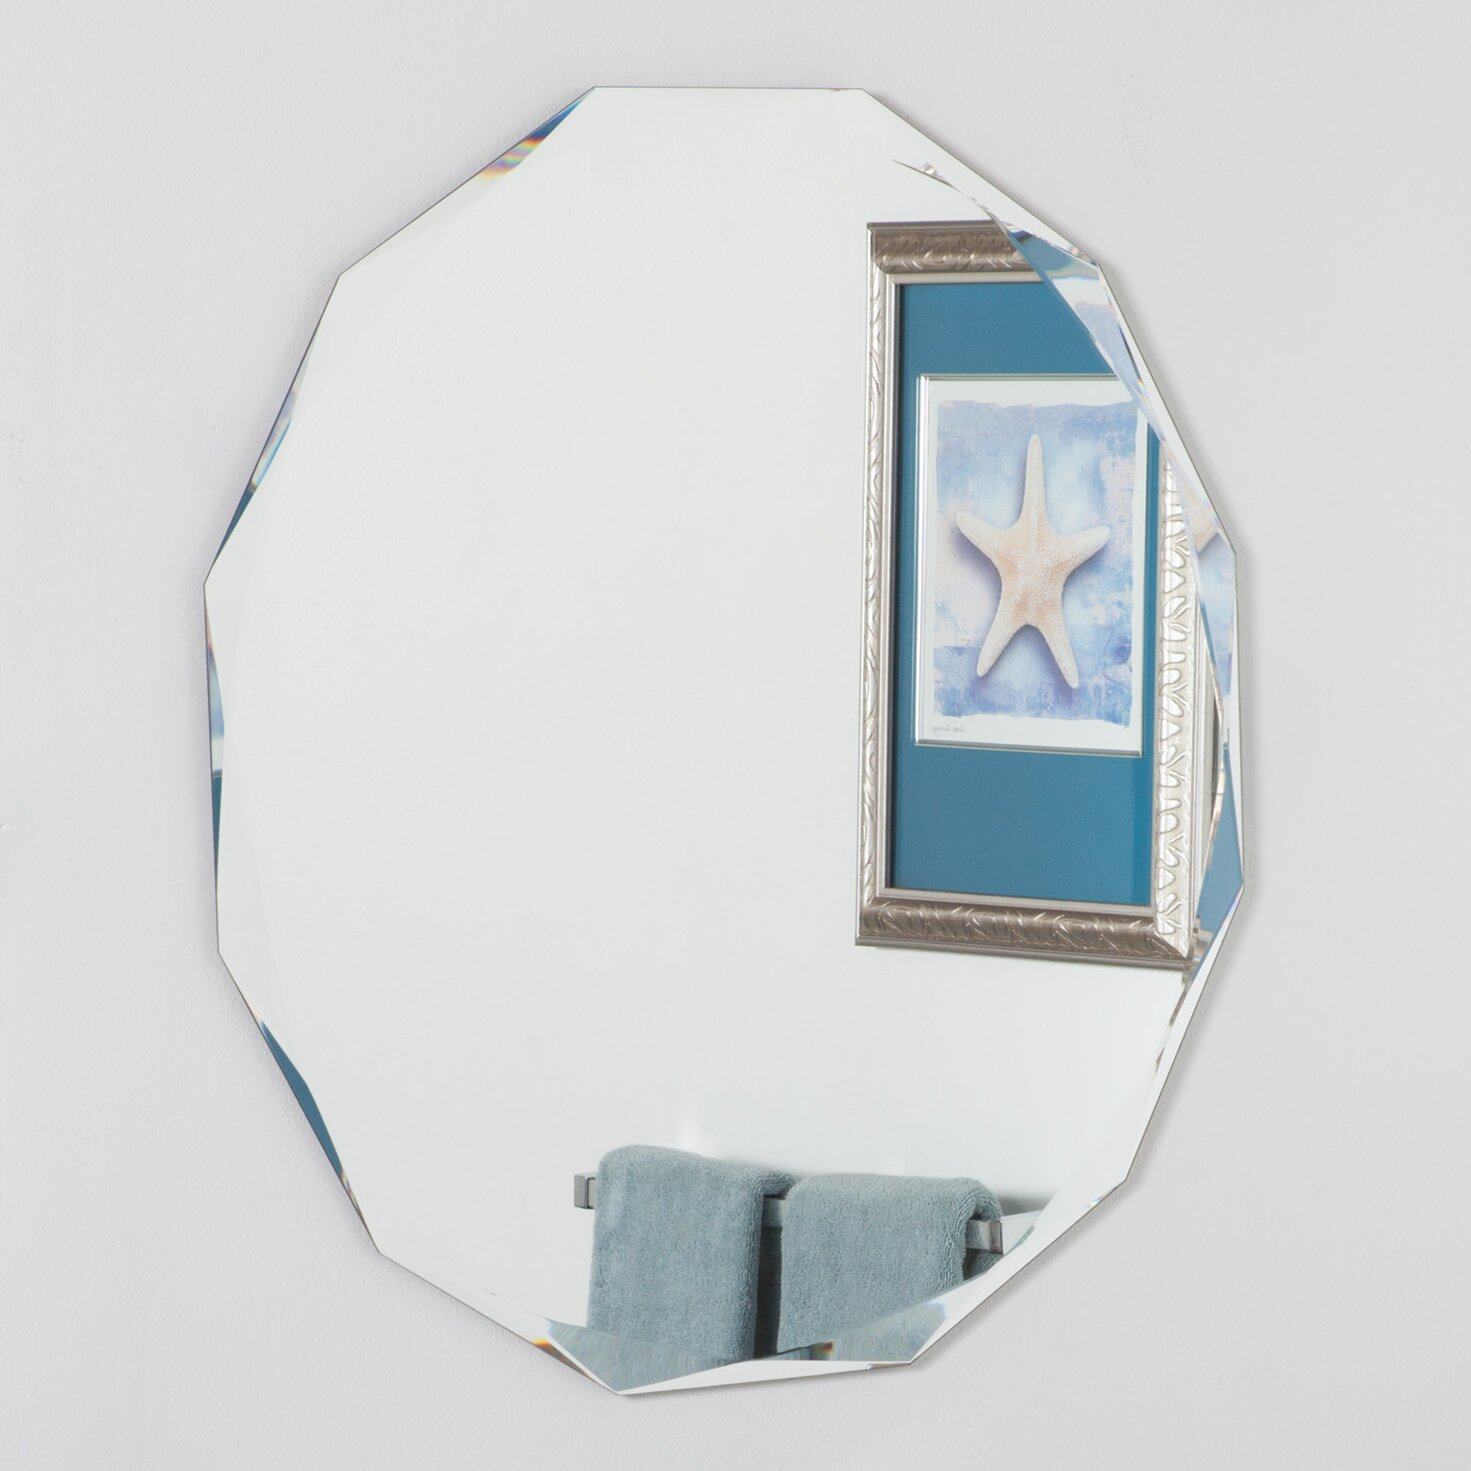 Decor wonderland frameless diamond wall mirror reviews for Frameless wall mirror